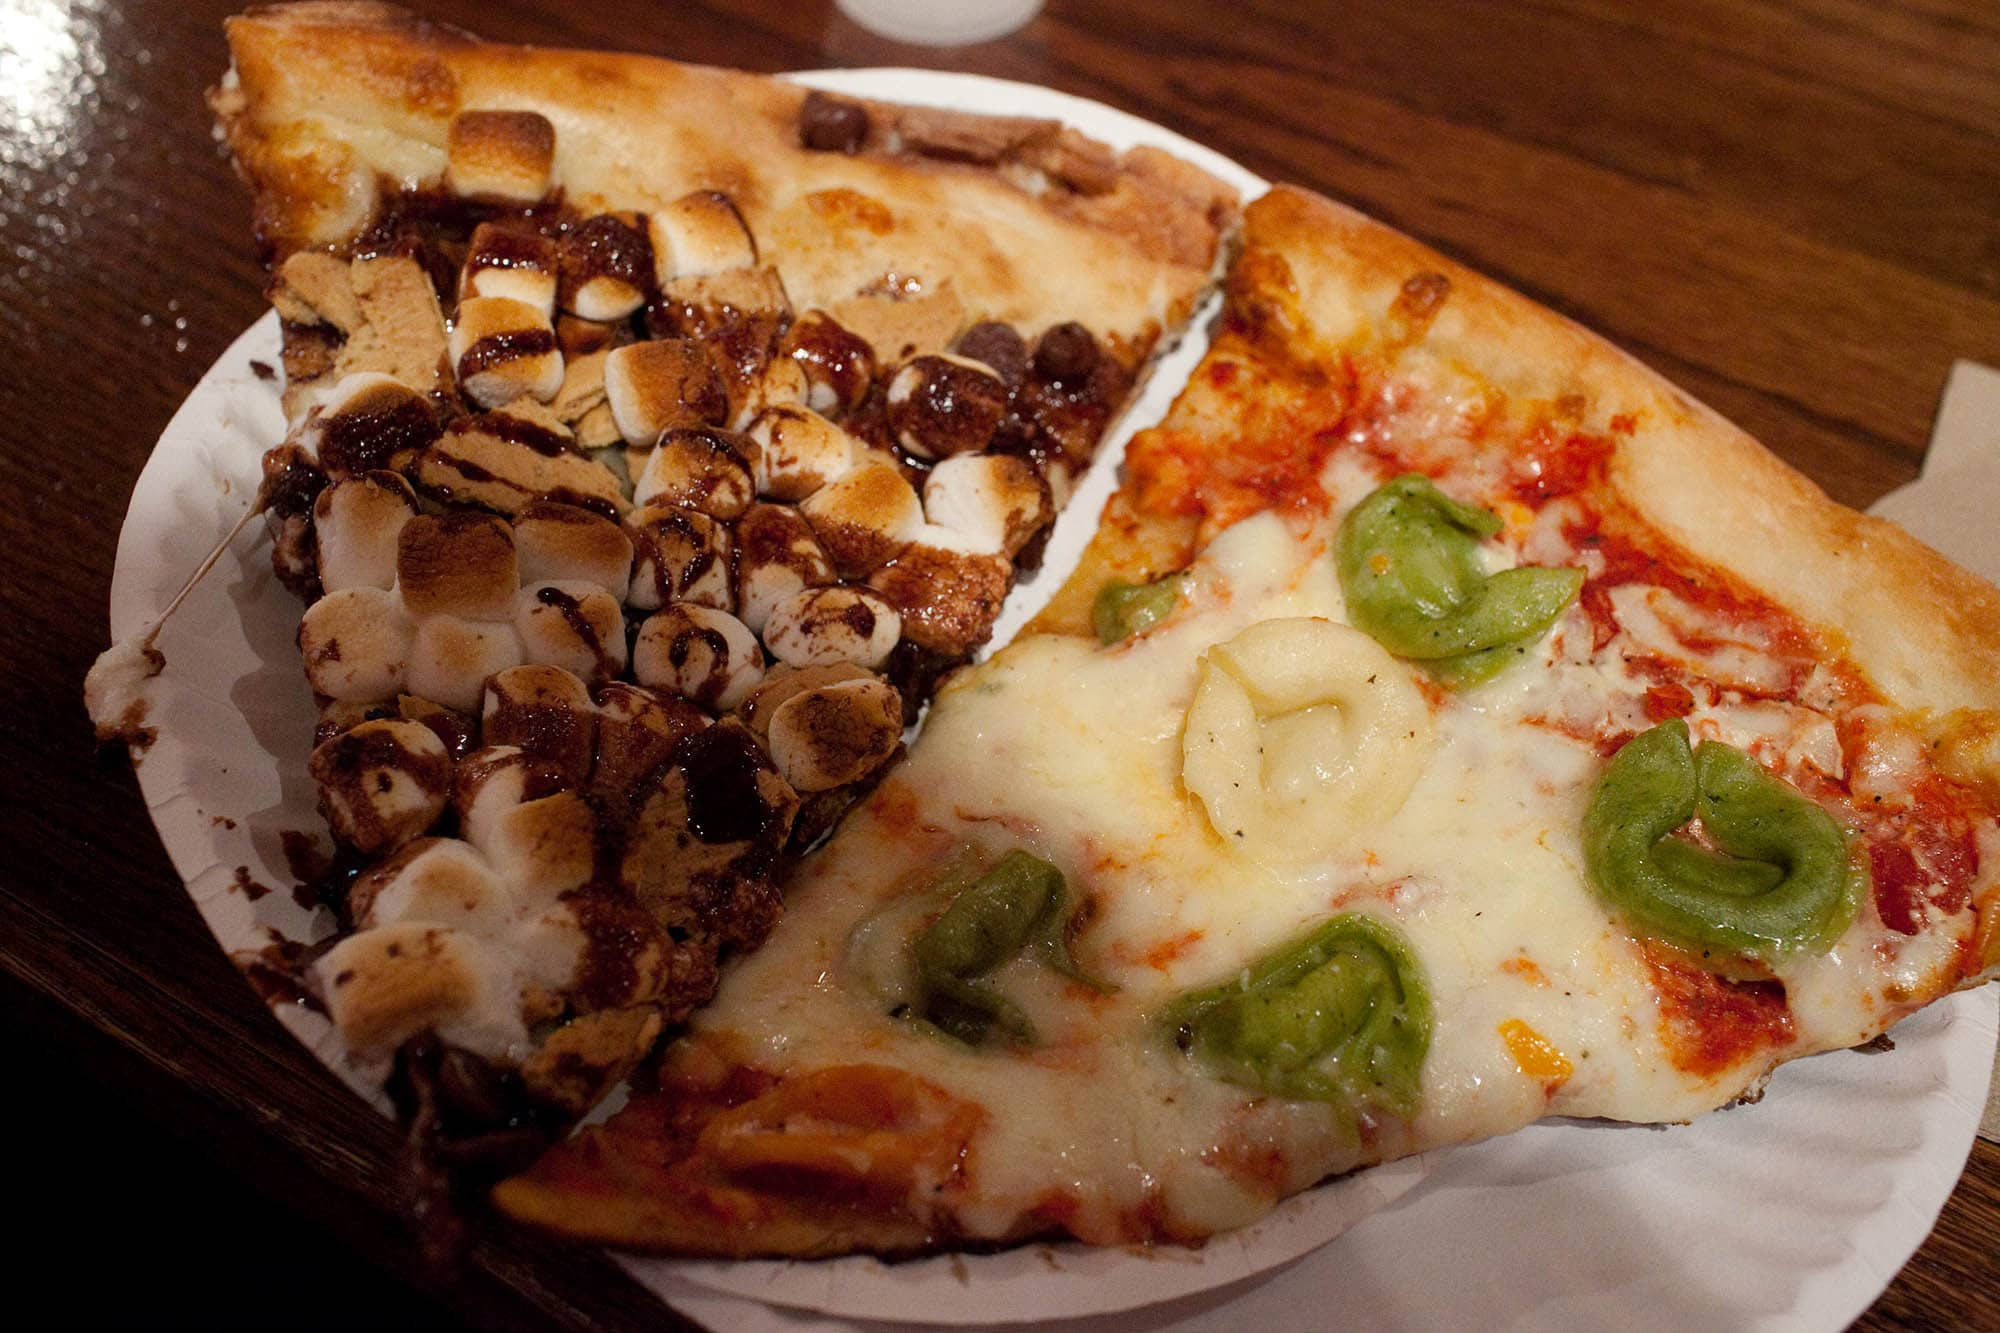 Tortellini and smore pizzas at Ian's Wrigleyville